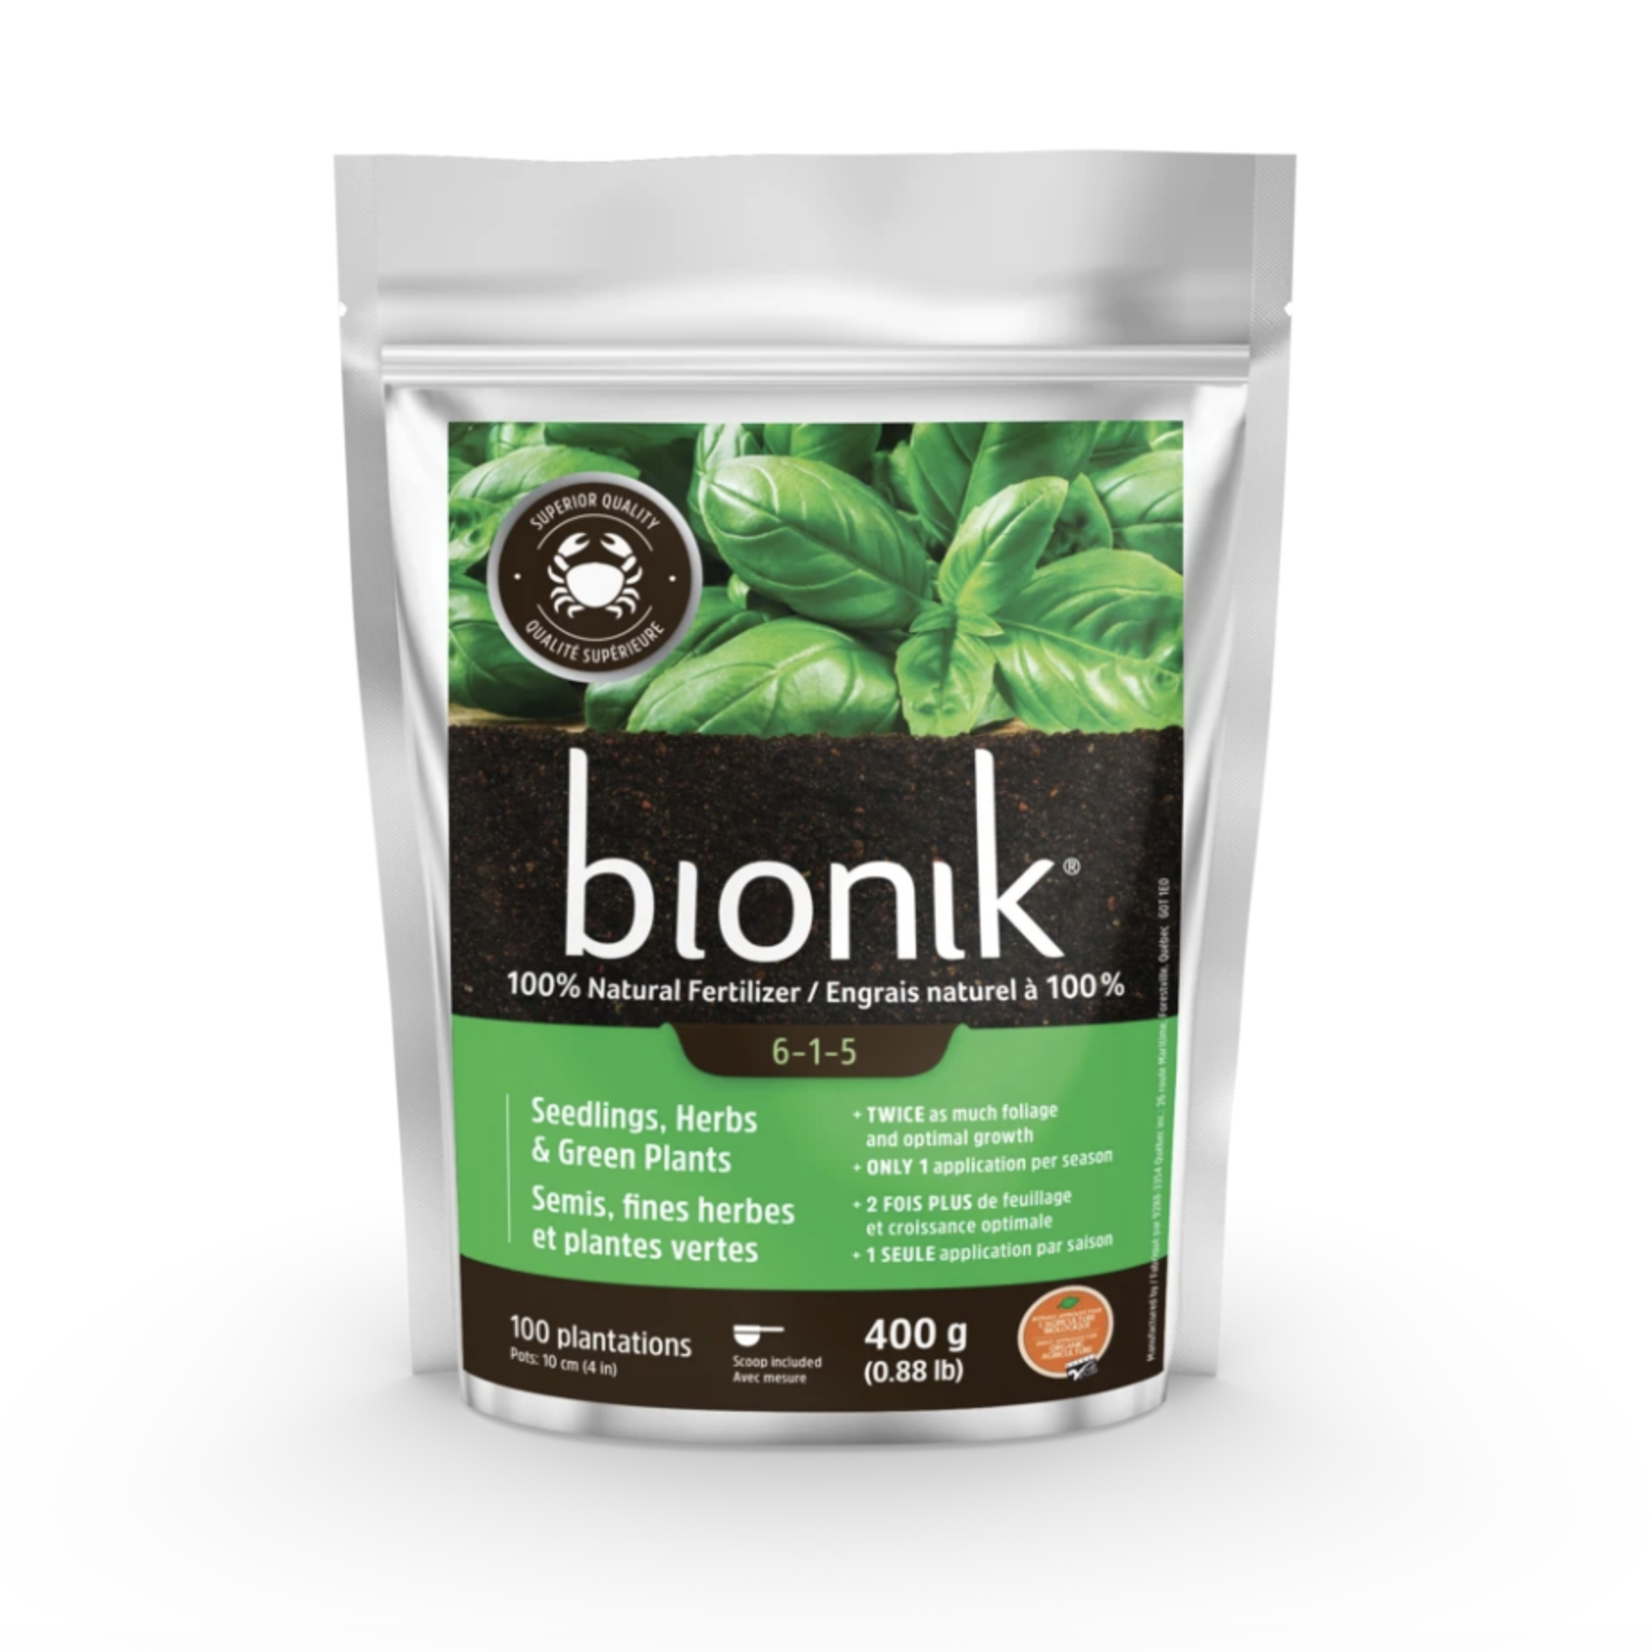 Bionik Seedlings, Herbs & Green Plantes 85 g